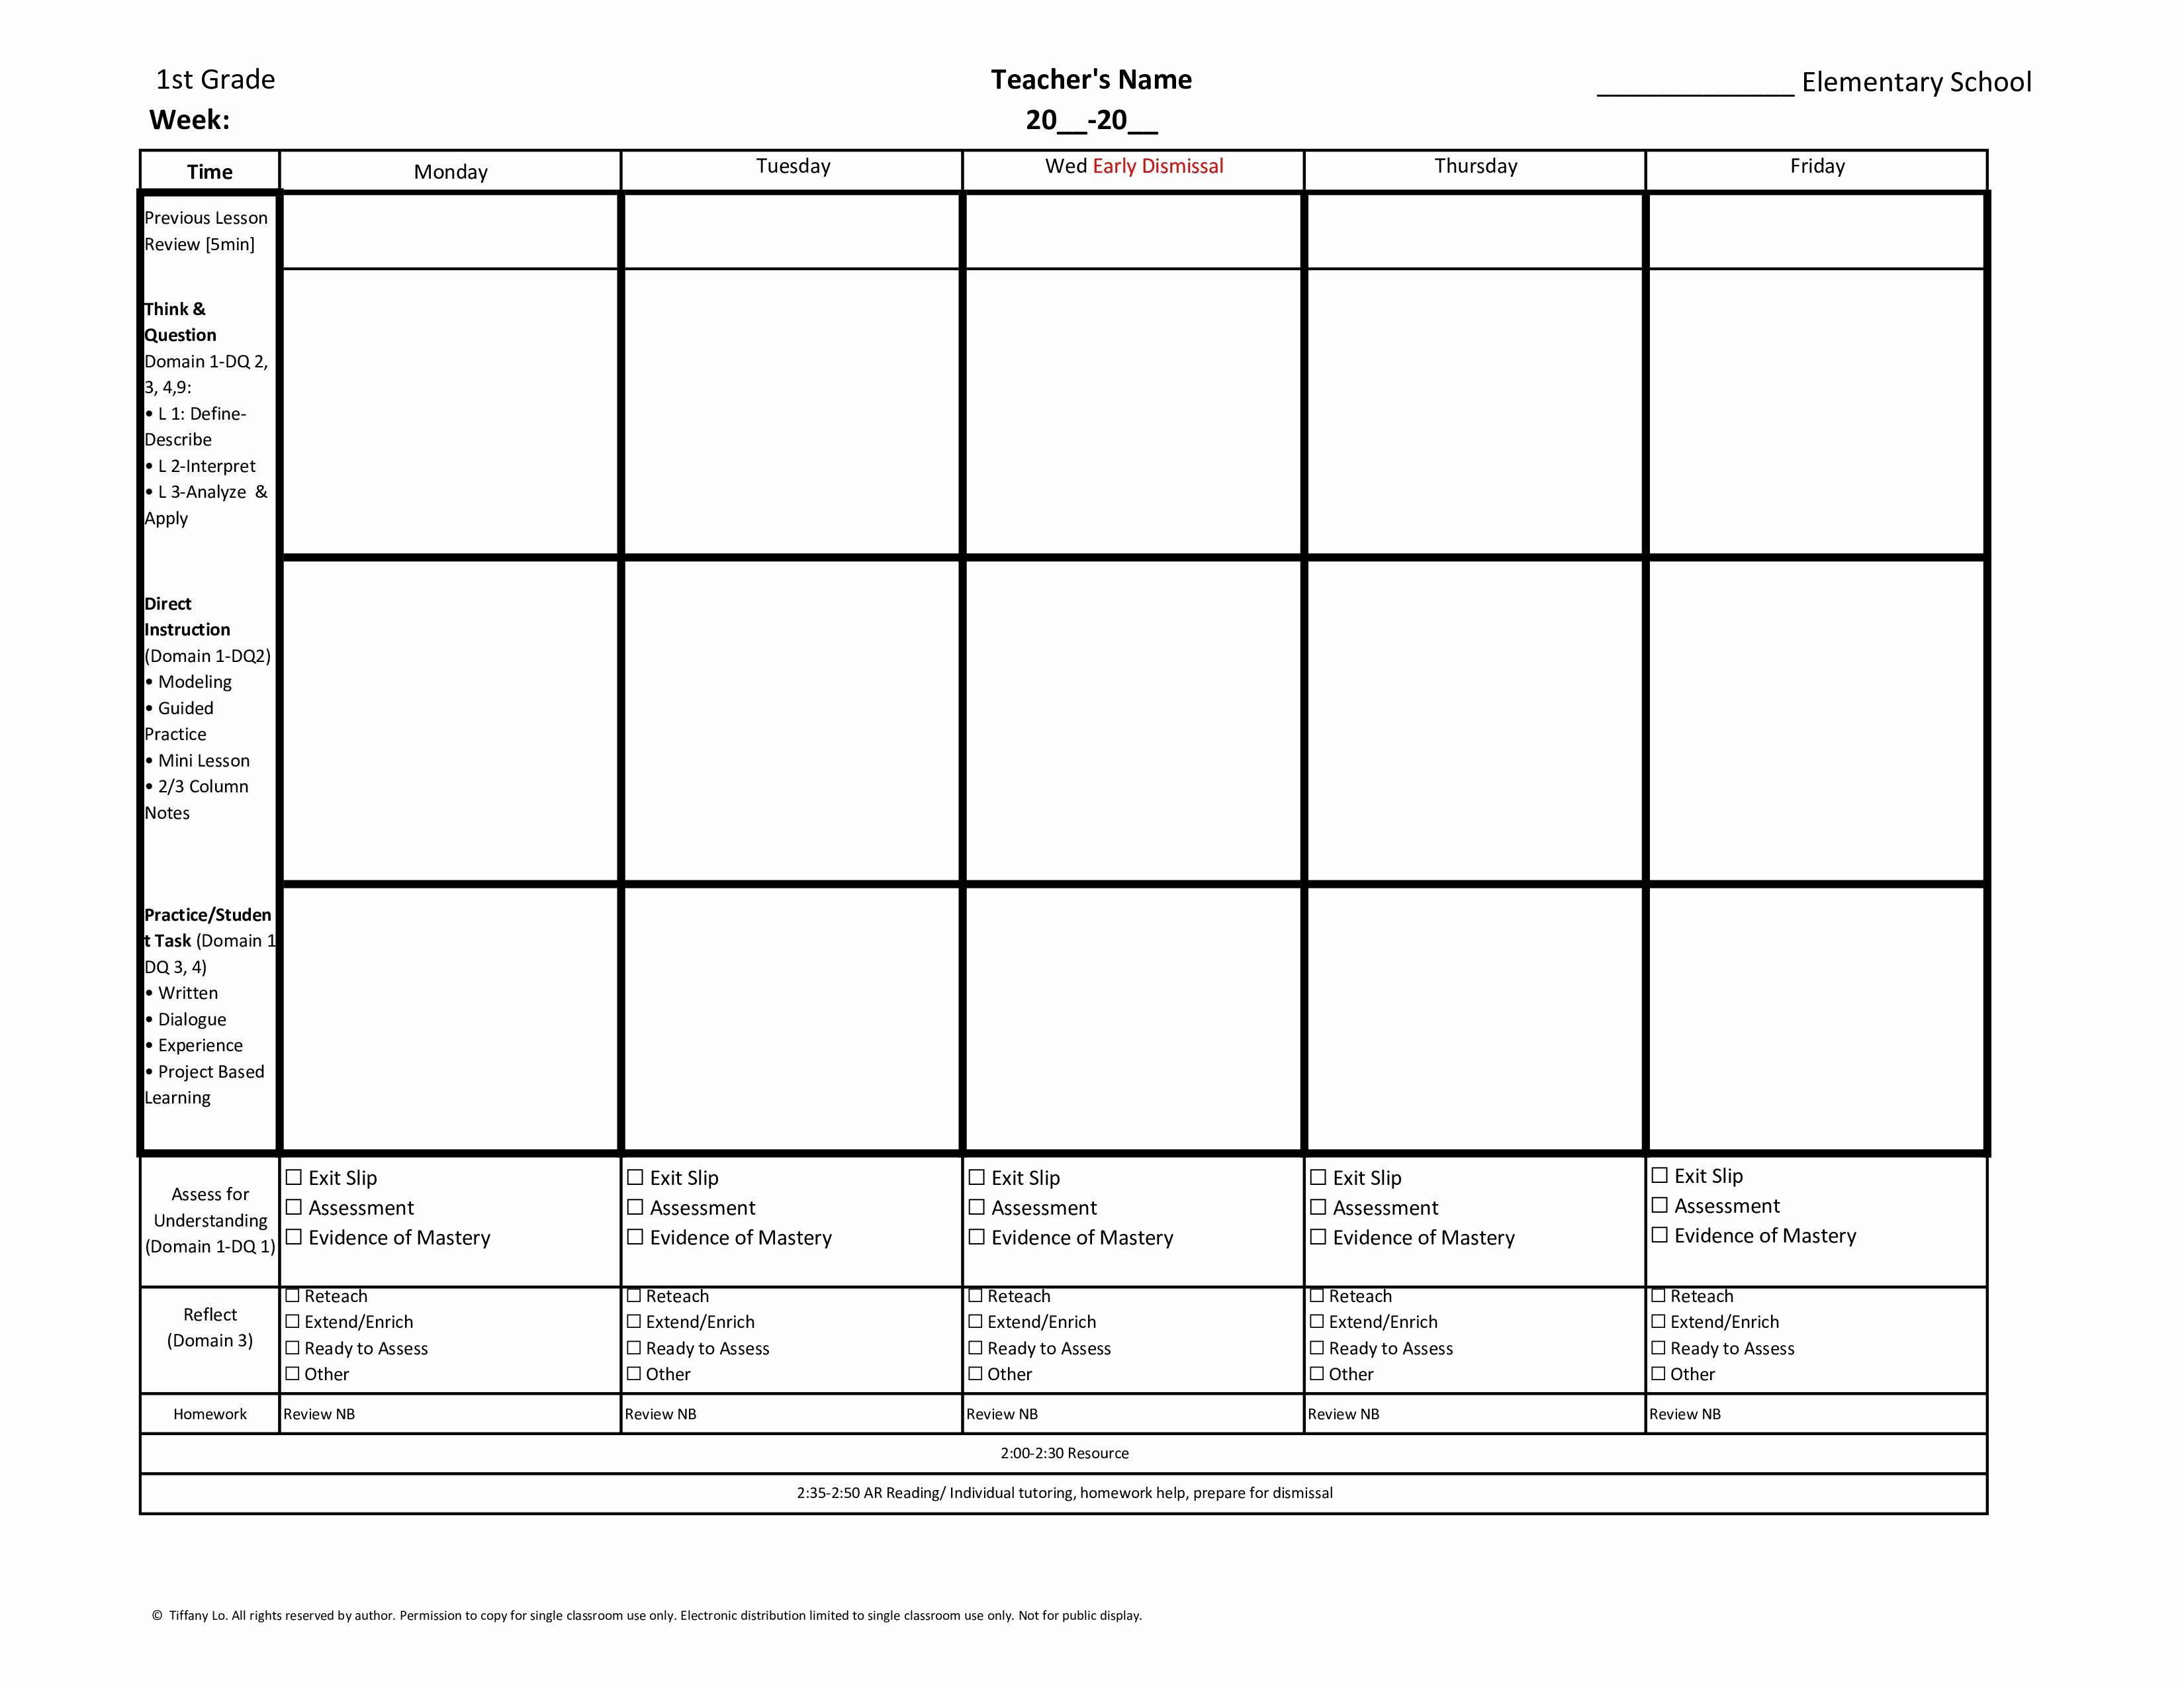 1st Grade Lesson Plan Template Inspirational 1st First Grade Mon Core Weekly Lesson Plan Template W